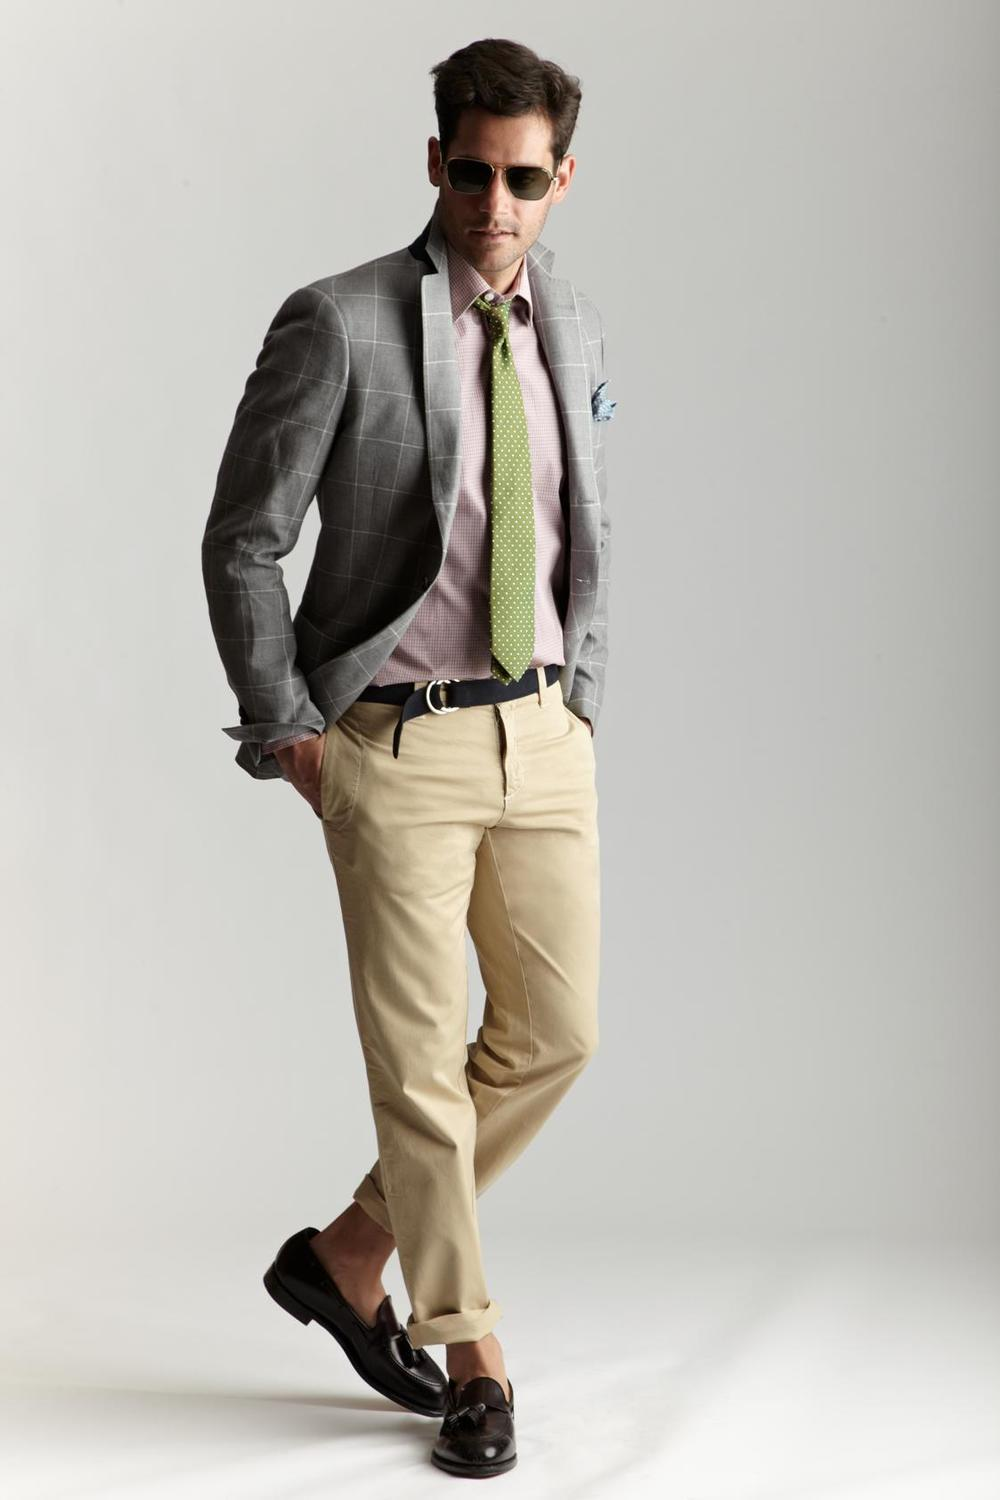 Michael-Bastian-x-Barneys-SS12-green-tie-men-windowpane-grey-jacket-beige-trousers-sockless.jpg